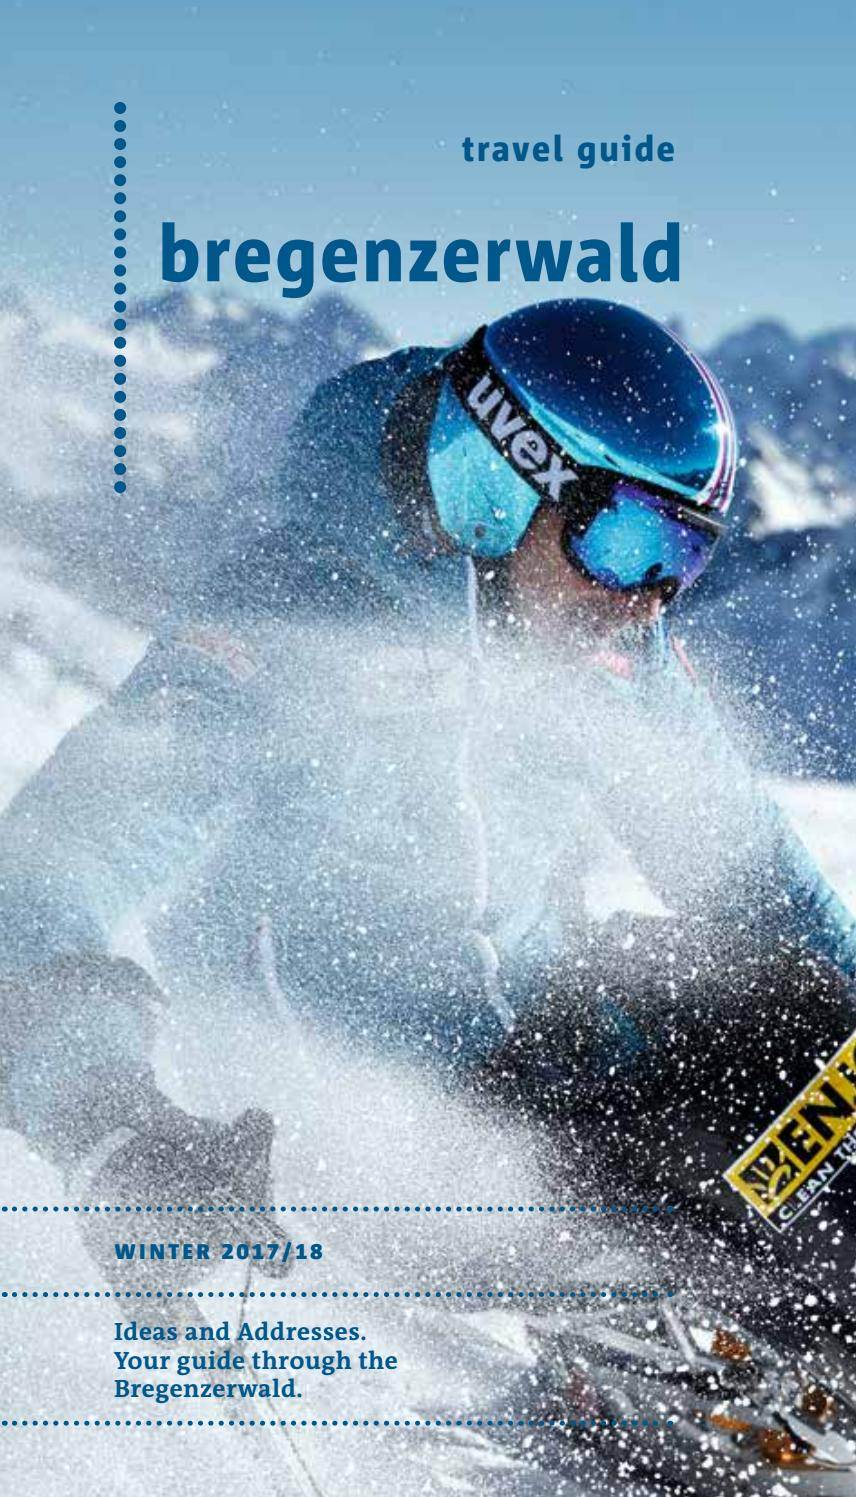 aaae90eb8861 Travel guide Bregenzerwald - Winter 2017-18 by Bregenzerwald Tourismus GmbH  - issuu